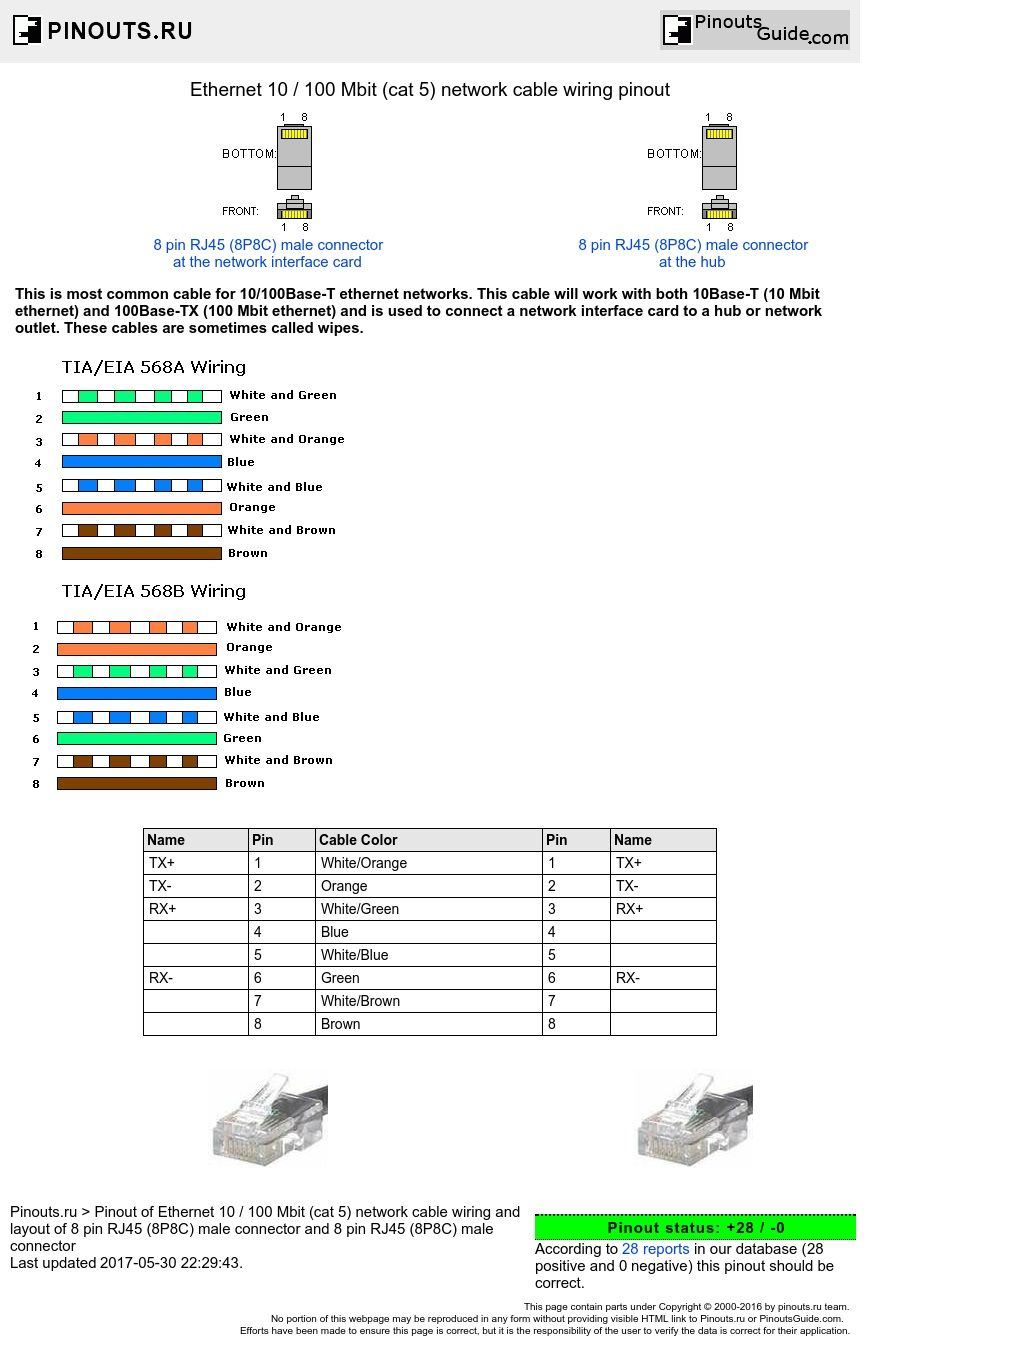 Superb Ethernet 10 100 Mbit Cat 5 Network Cable Wiring Diagram Guide Wiring Cloud Uslyletkolfr09Org